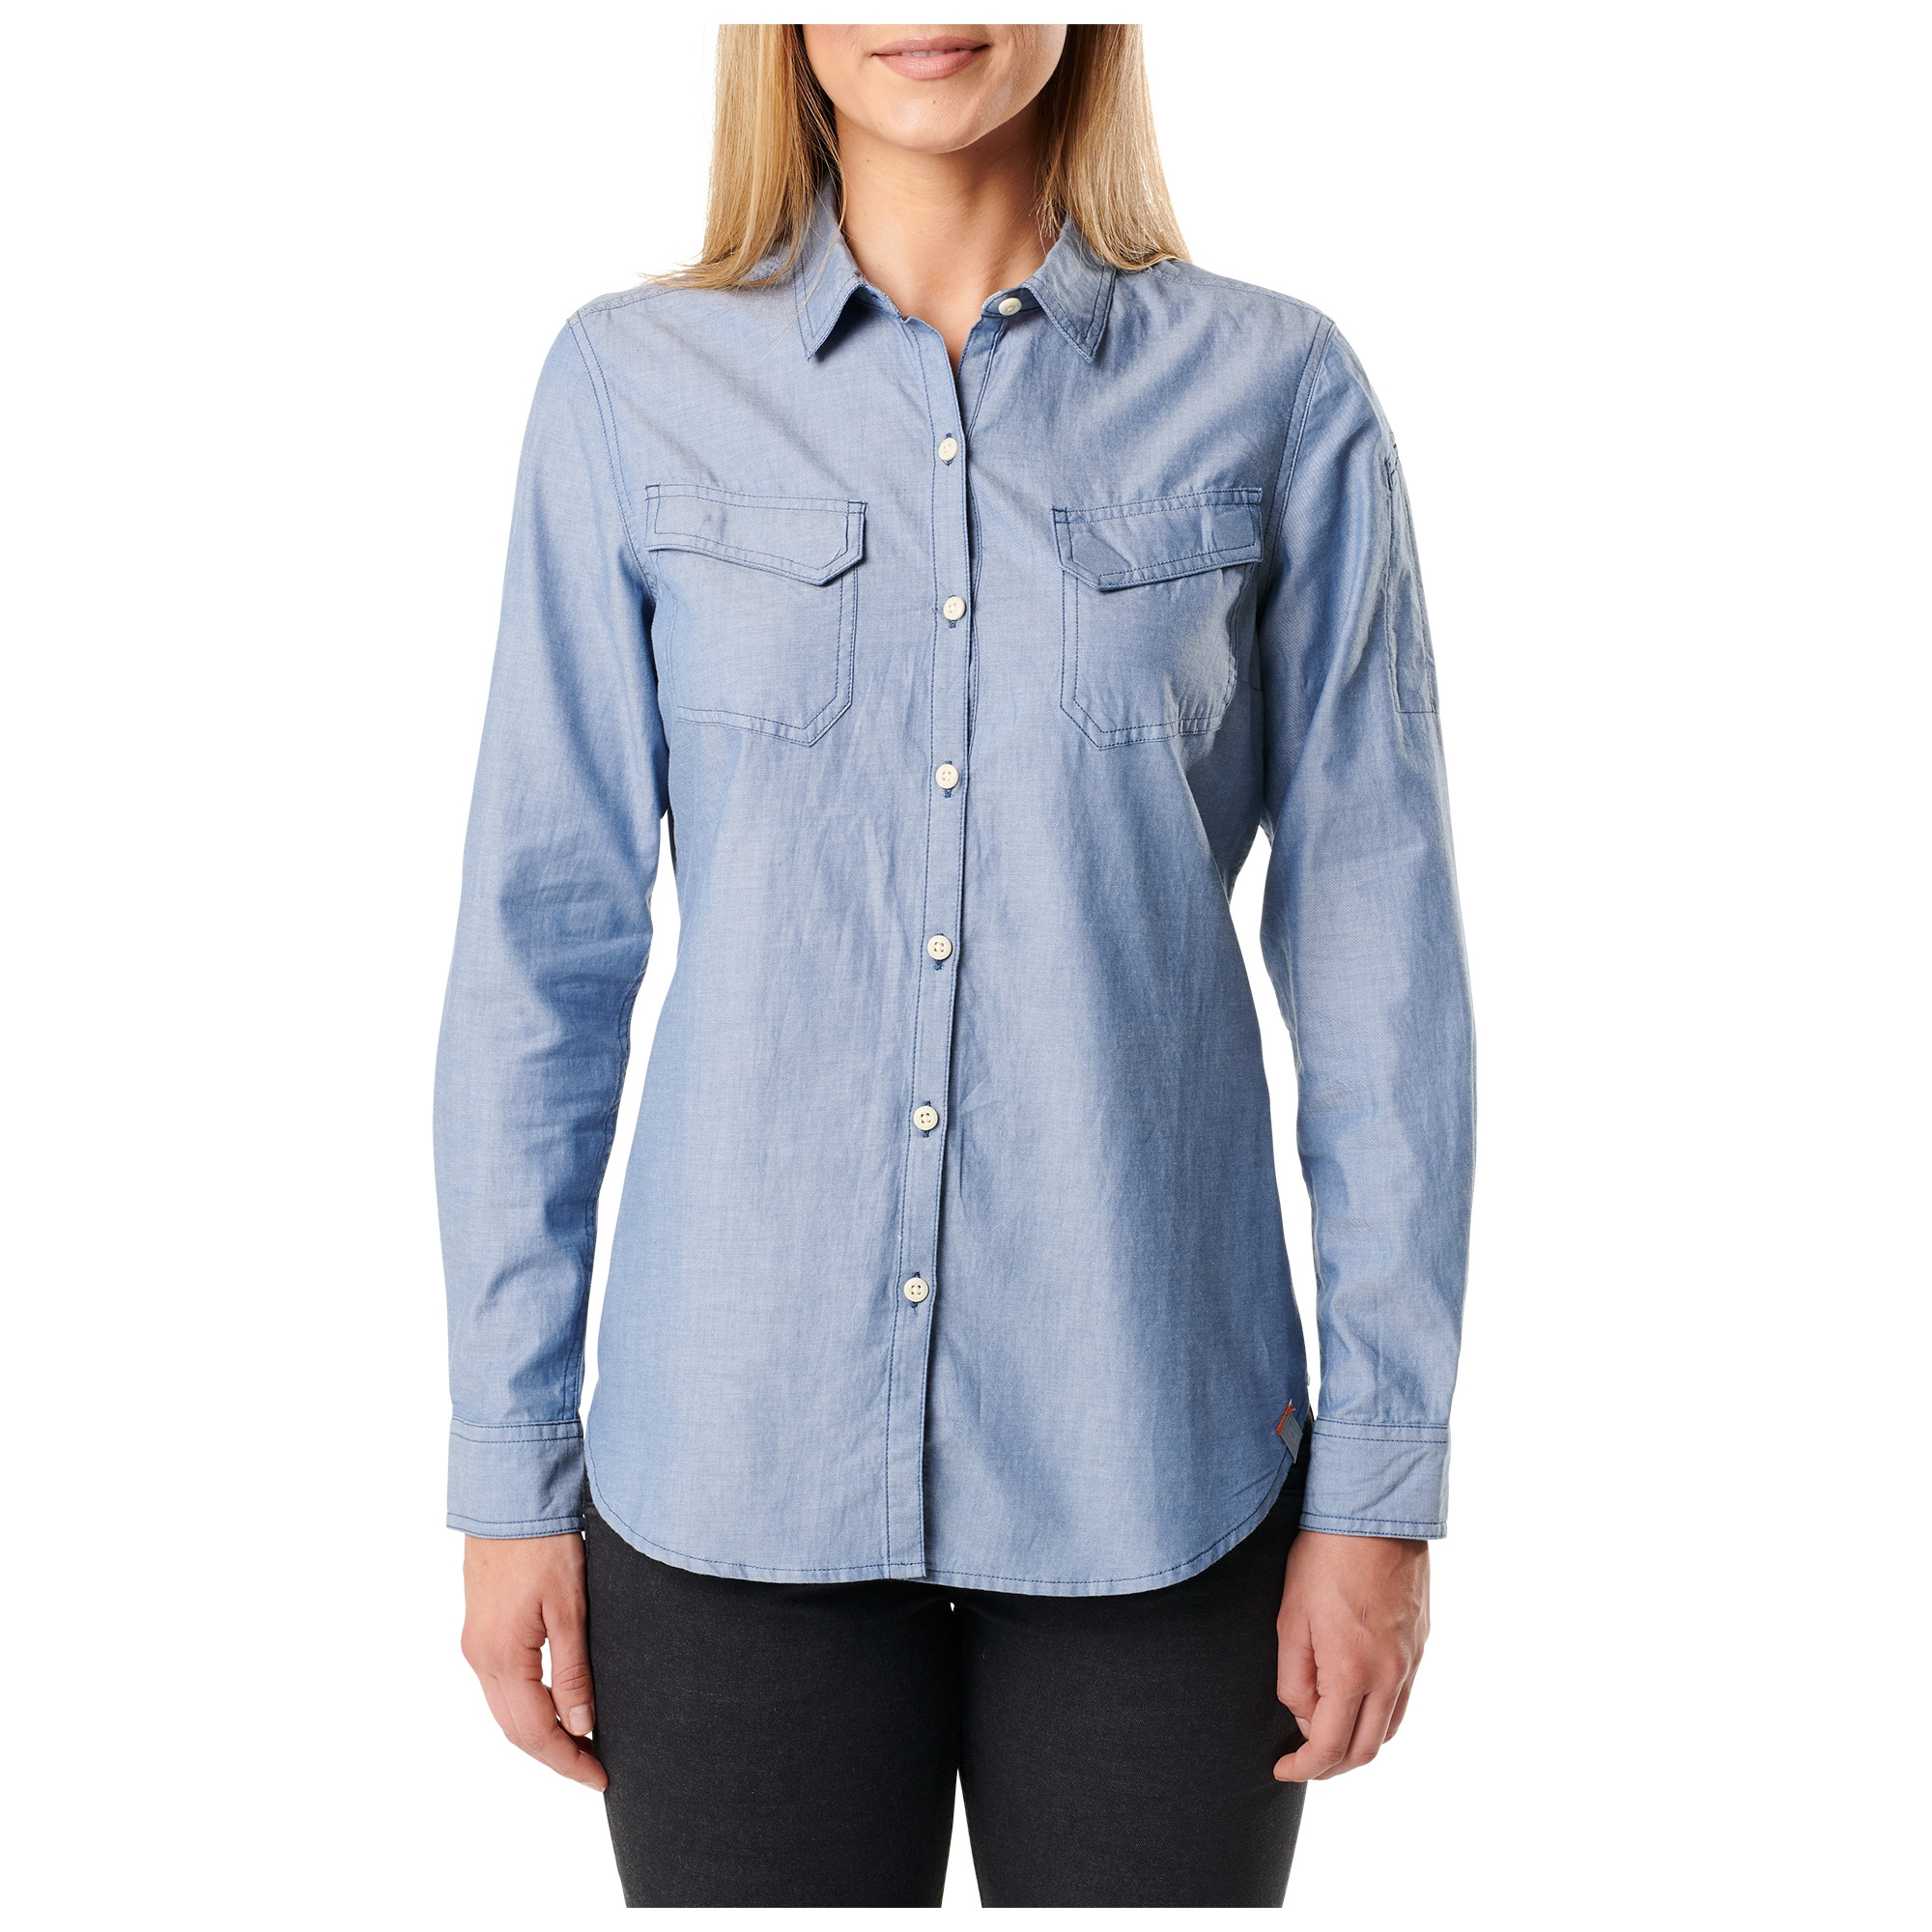 Tactical women 39 s chambray shirt blue for Cuisine you chambray